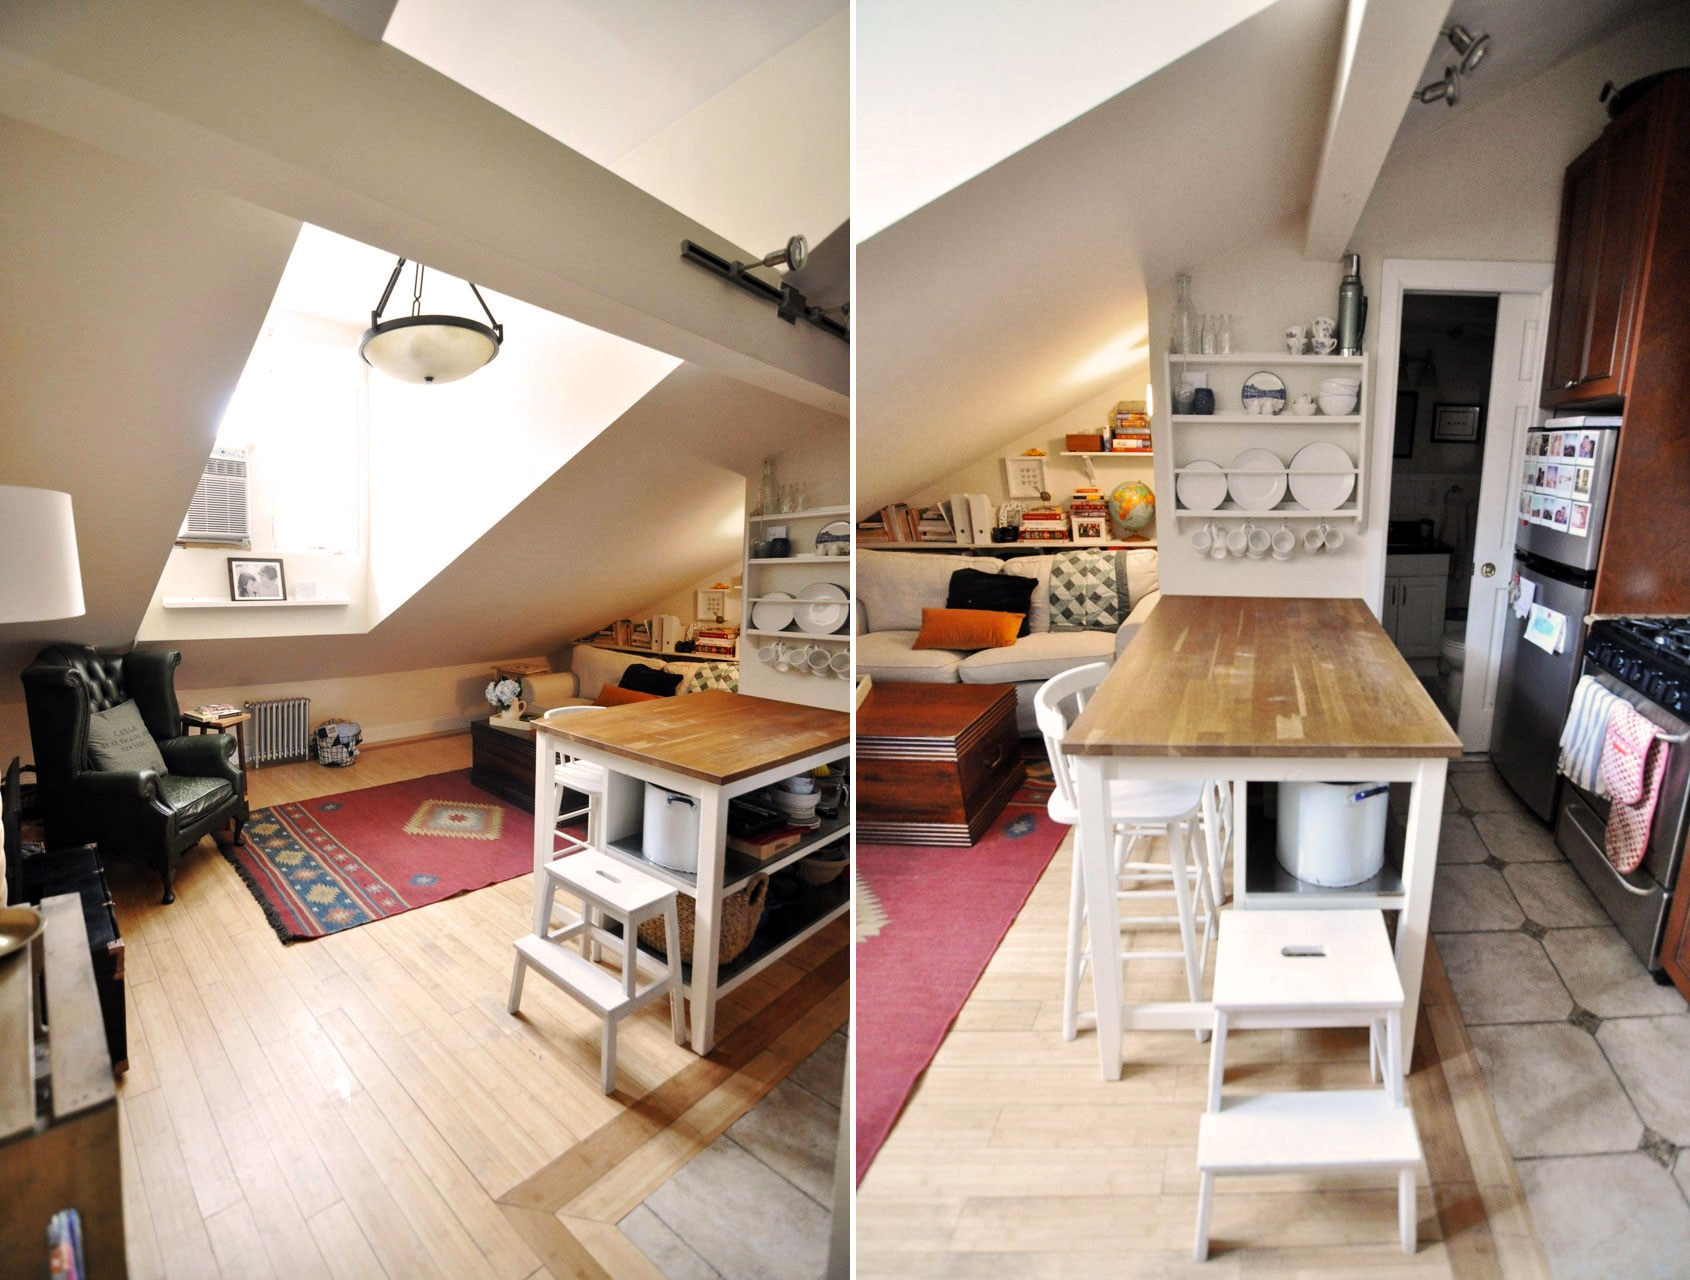 Best Kitchen Gallery: Awesome Attics Inside The Other Penthouses Of New York City 6sqft of Apartments In New York  on rachelxblog.com